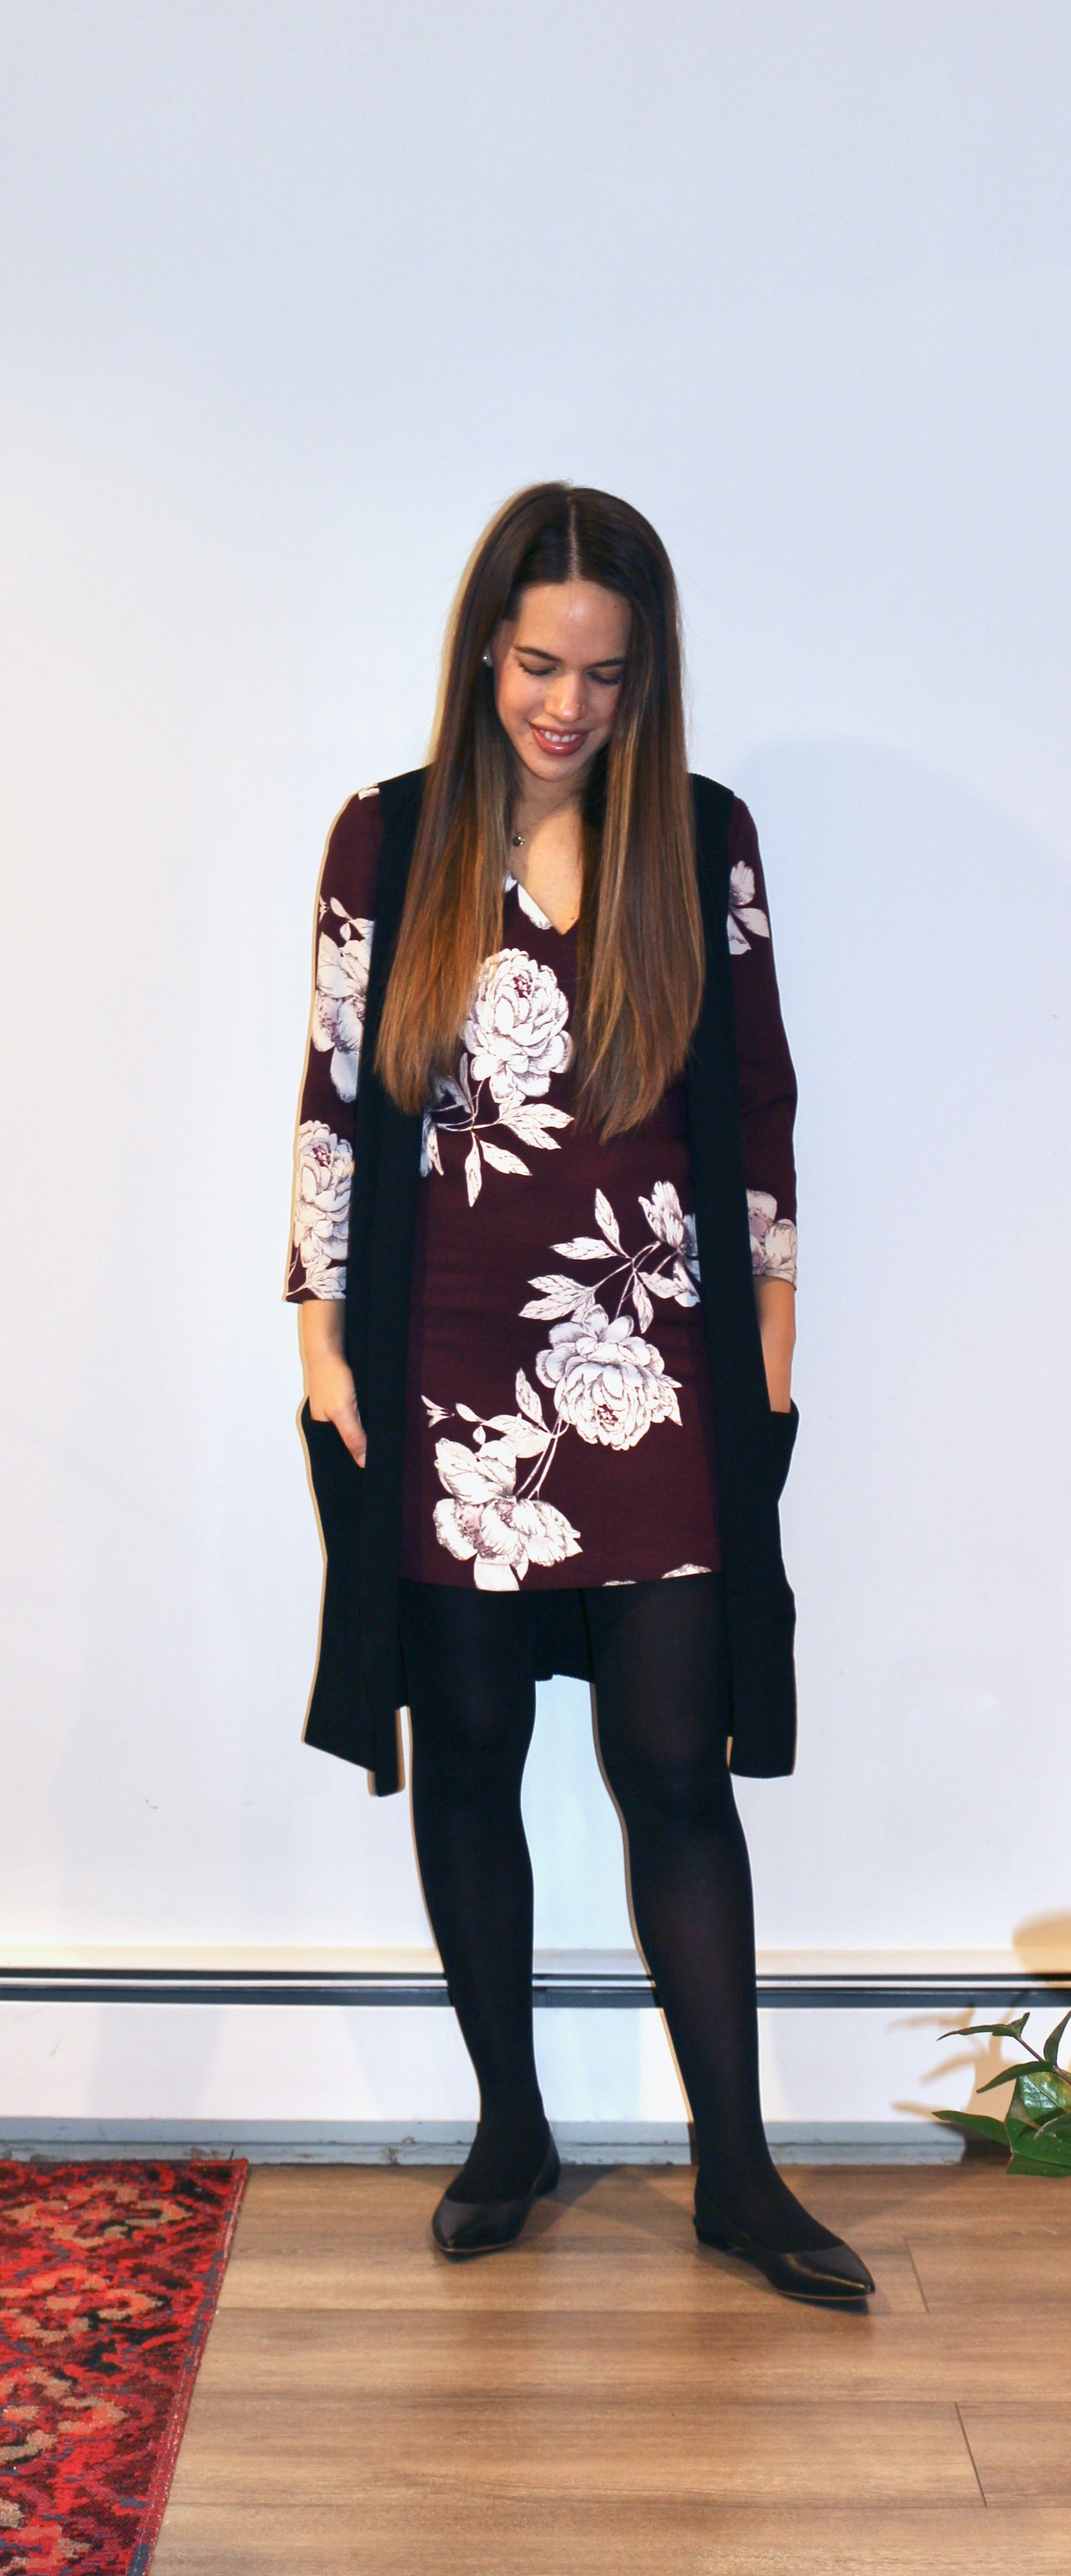 Jules in Flats - V-Neck Floral Shift Dress with Knit Duster (Business Casual Workwear on a Budget)